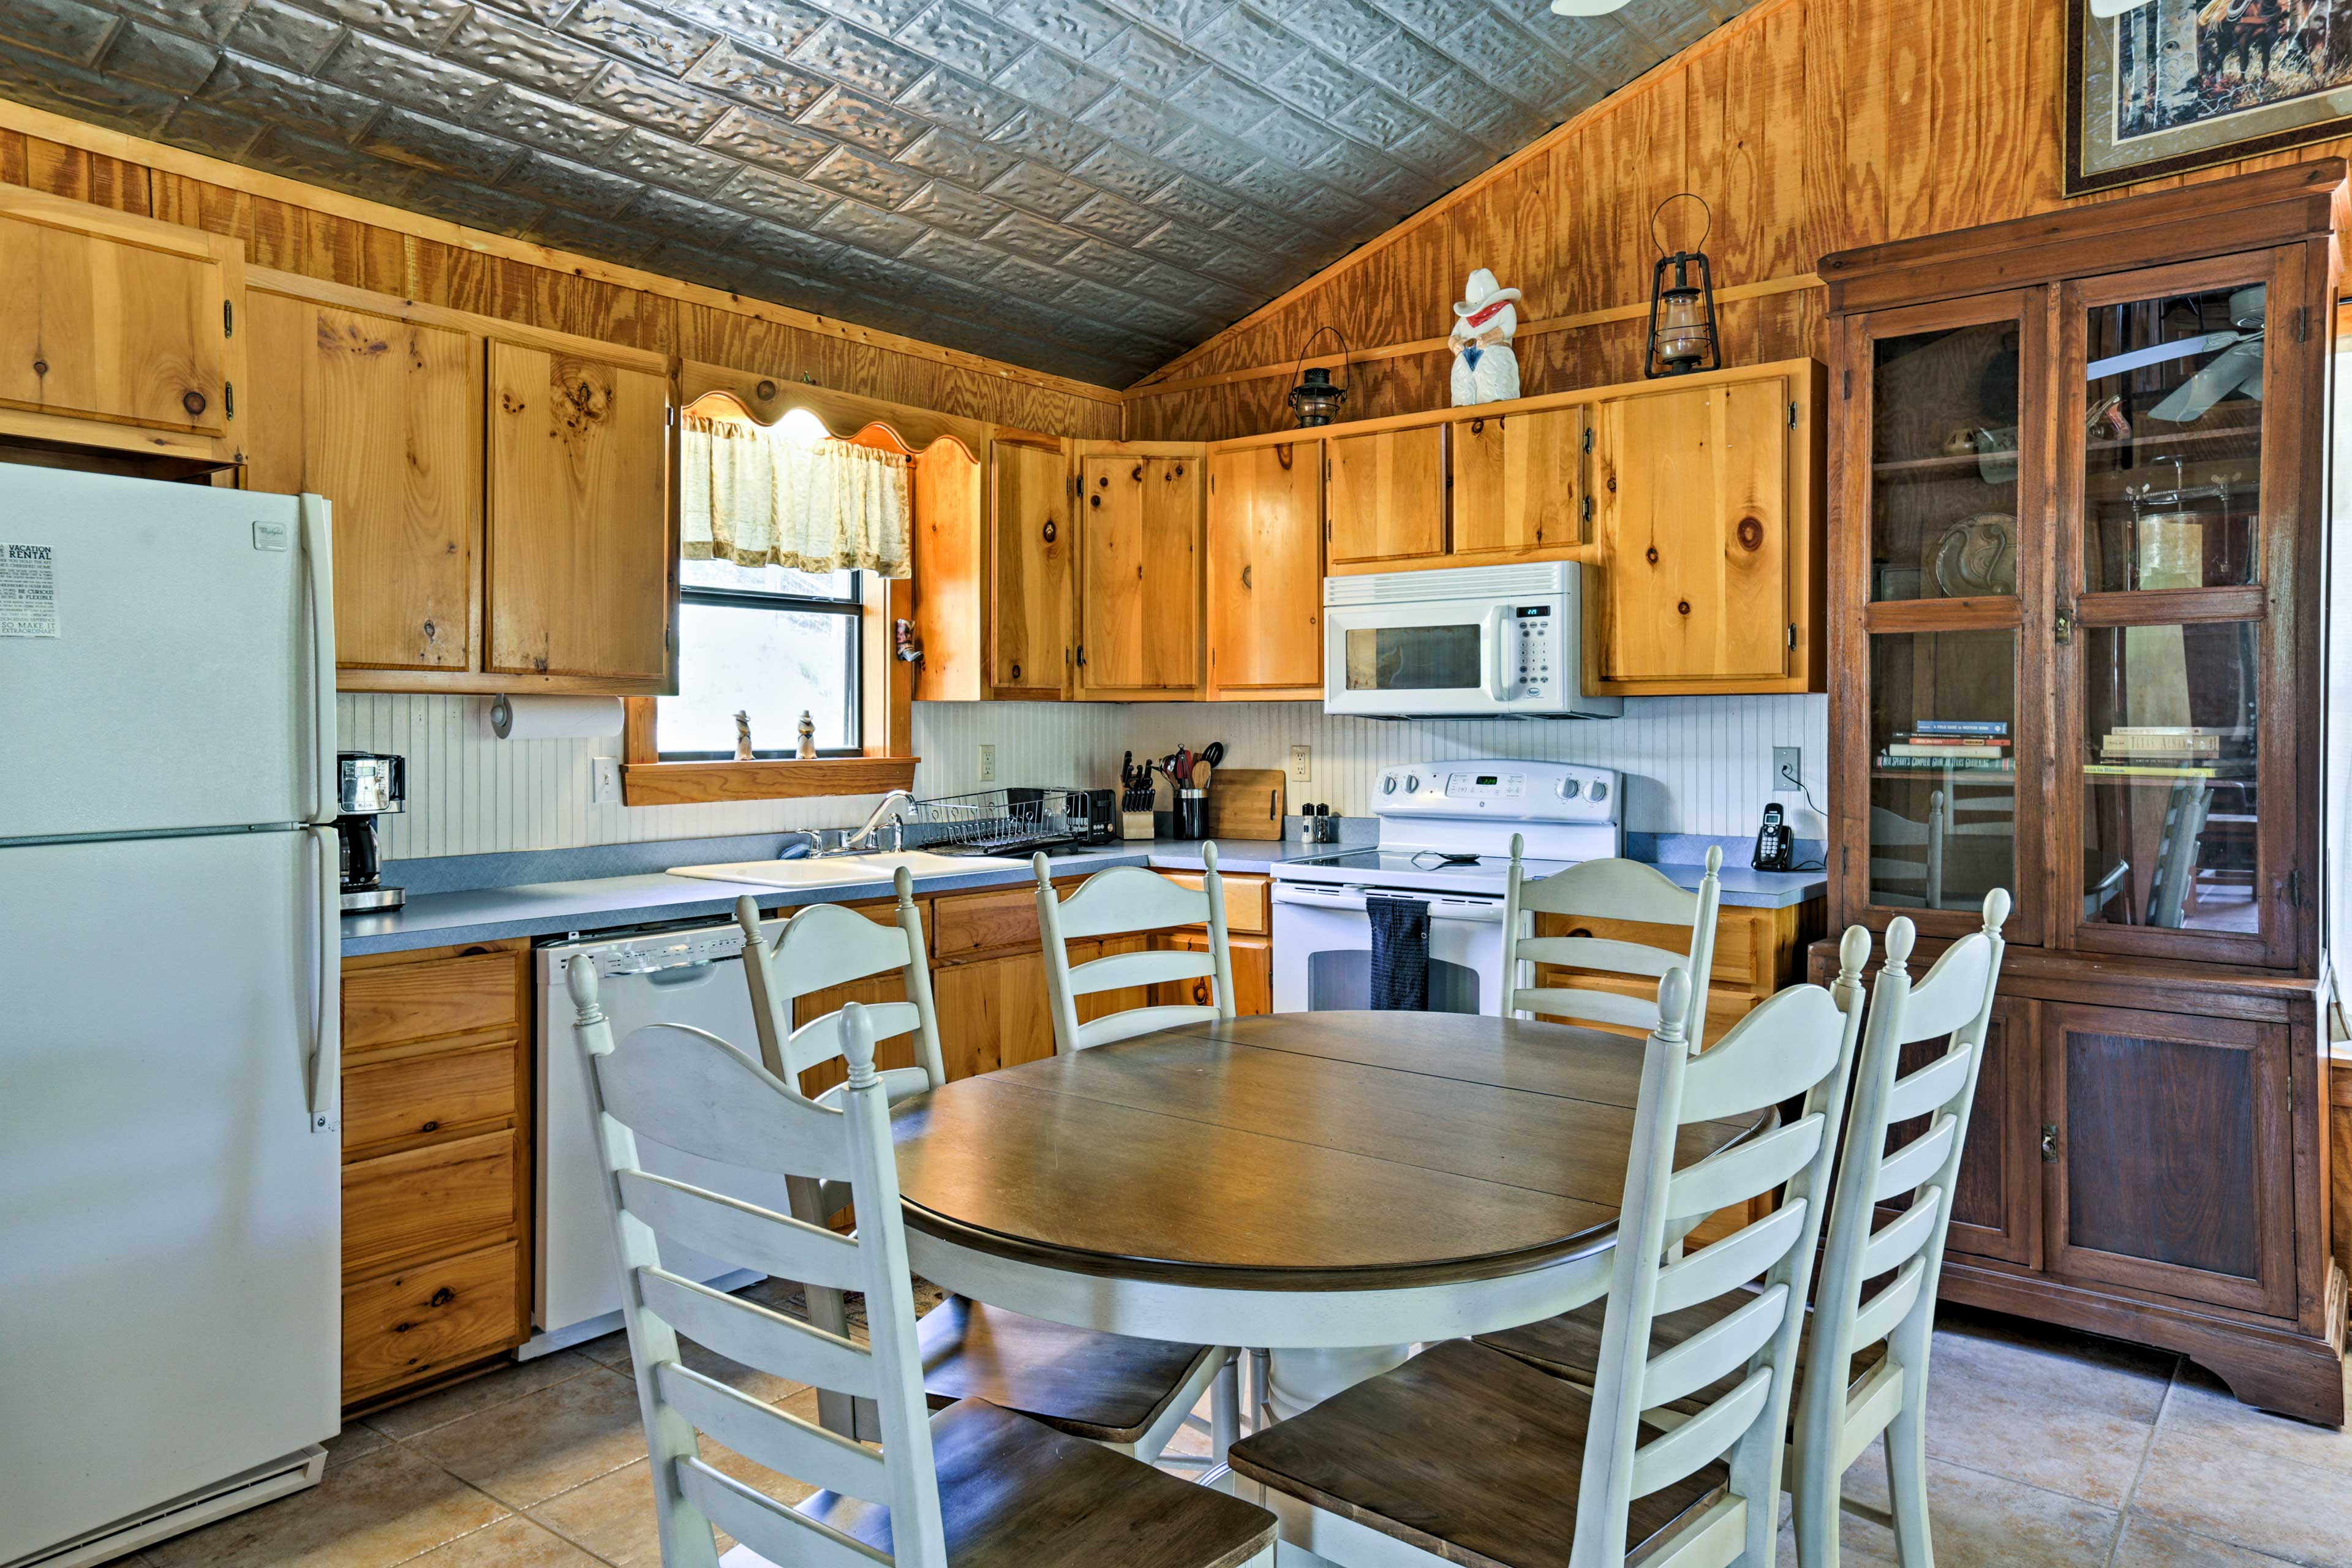 The fully equipped kitchen has everything you need to cook for your crew.